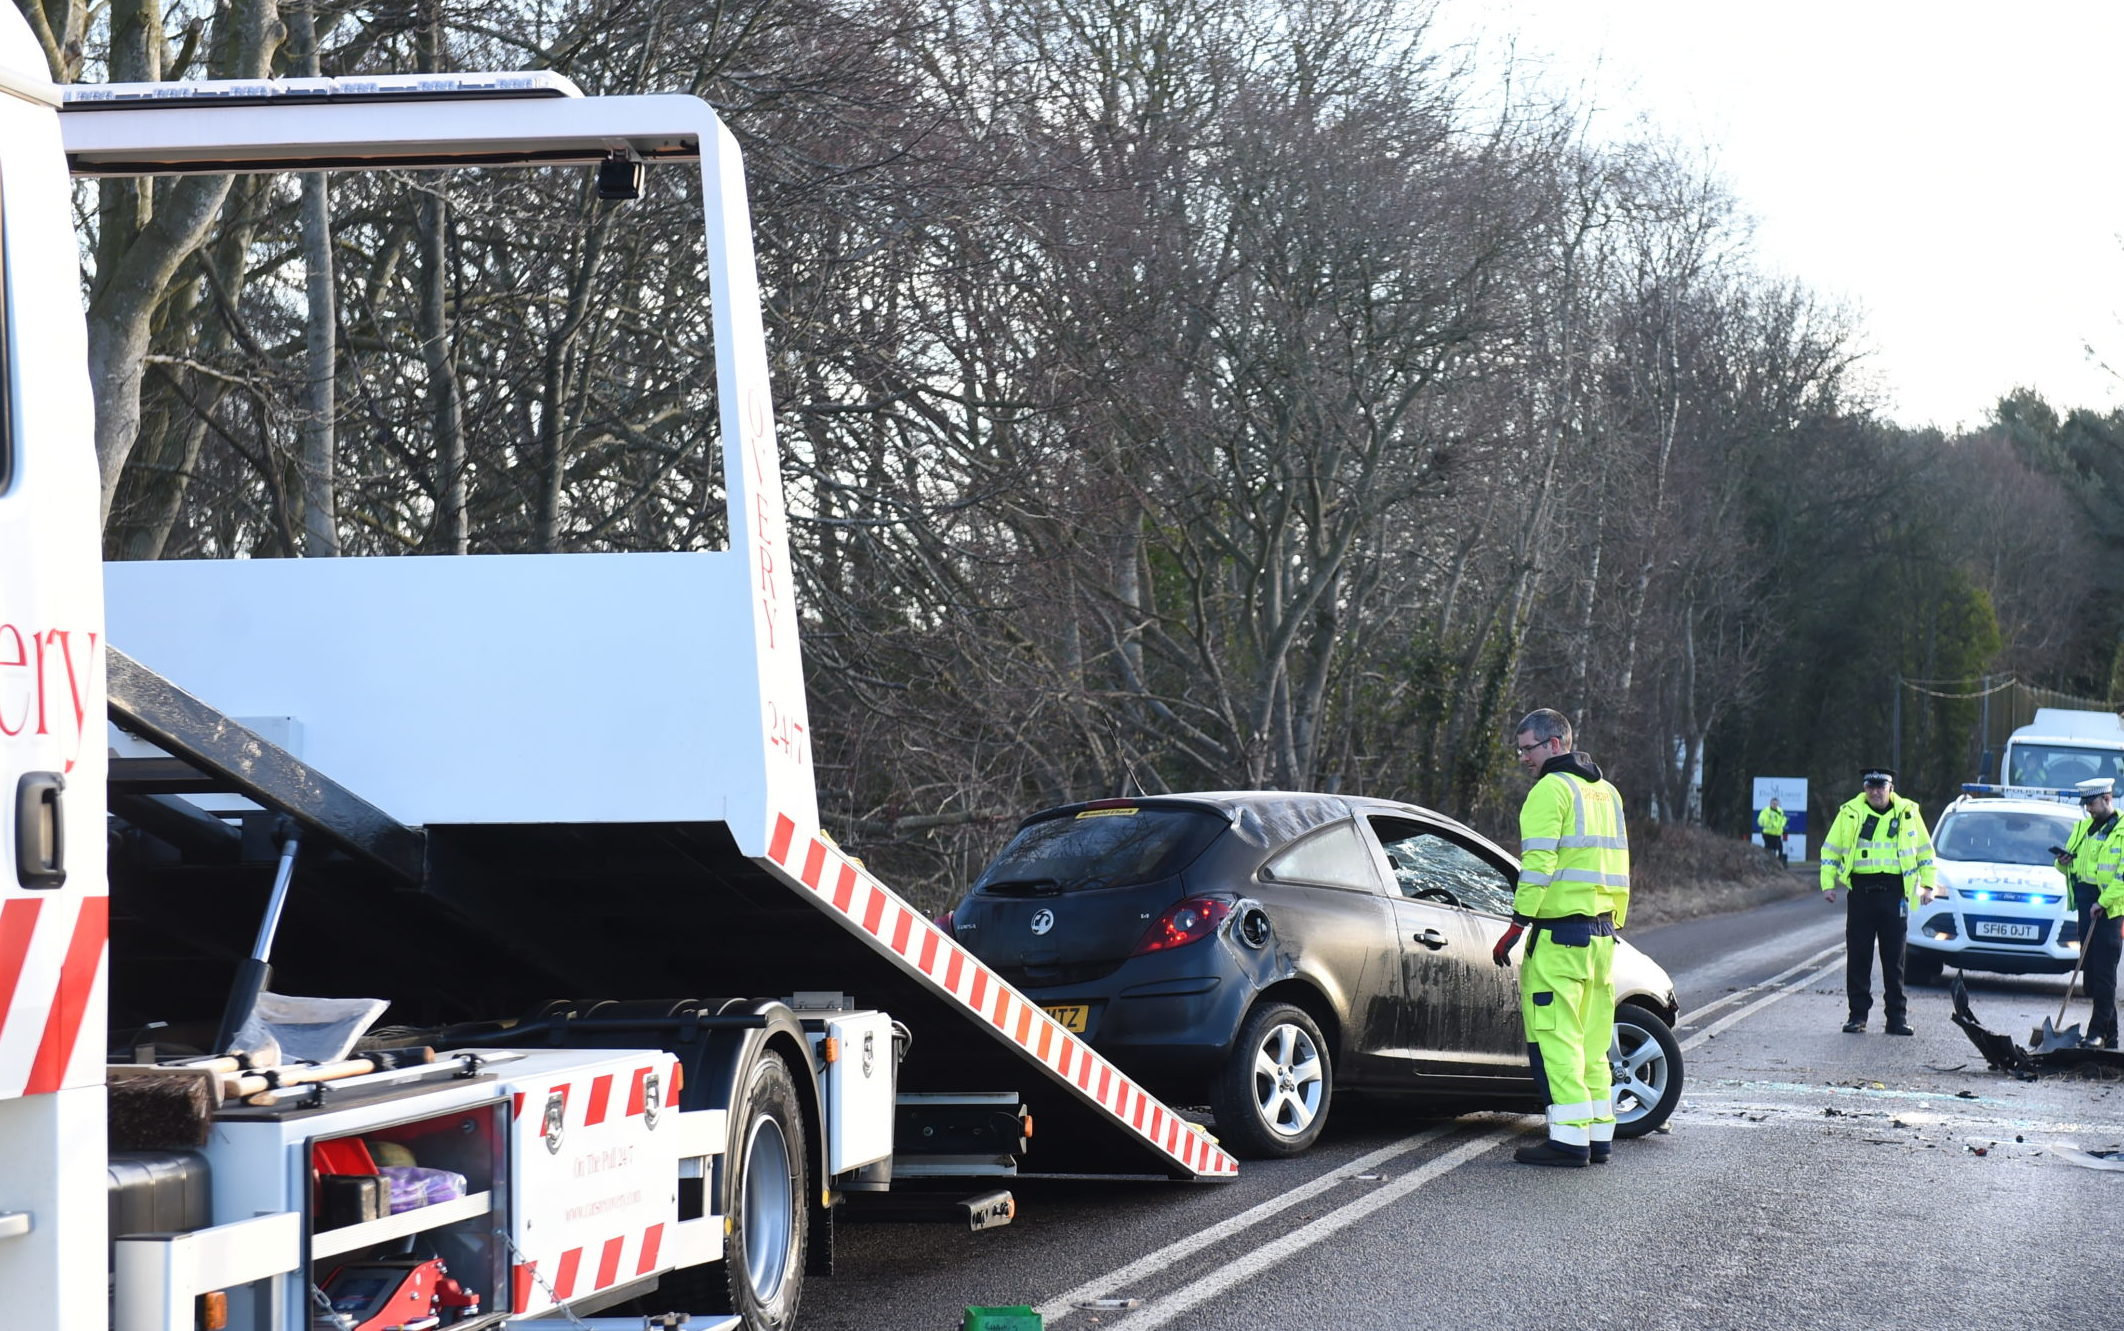 A recovery vehicle pictured removing the damaged Vauxhall Corsa on South Deeside Road.  Picture by Paul Glendell.